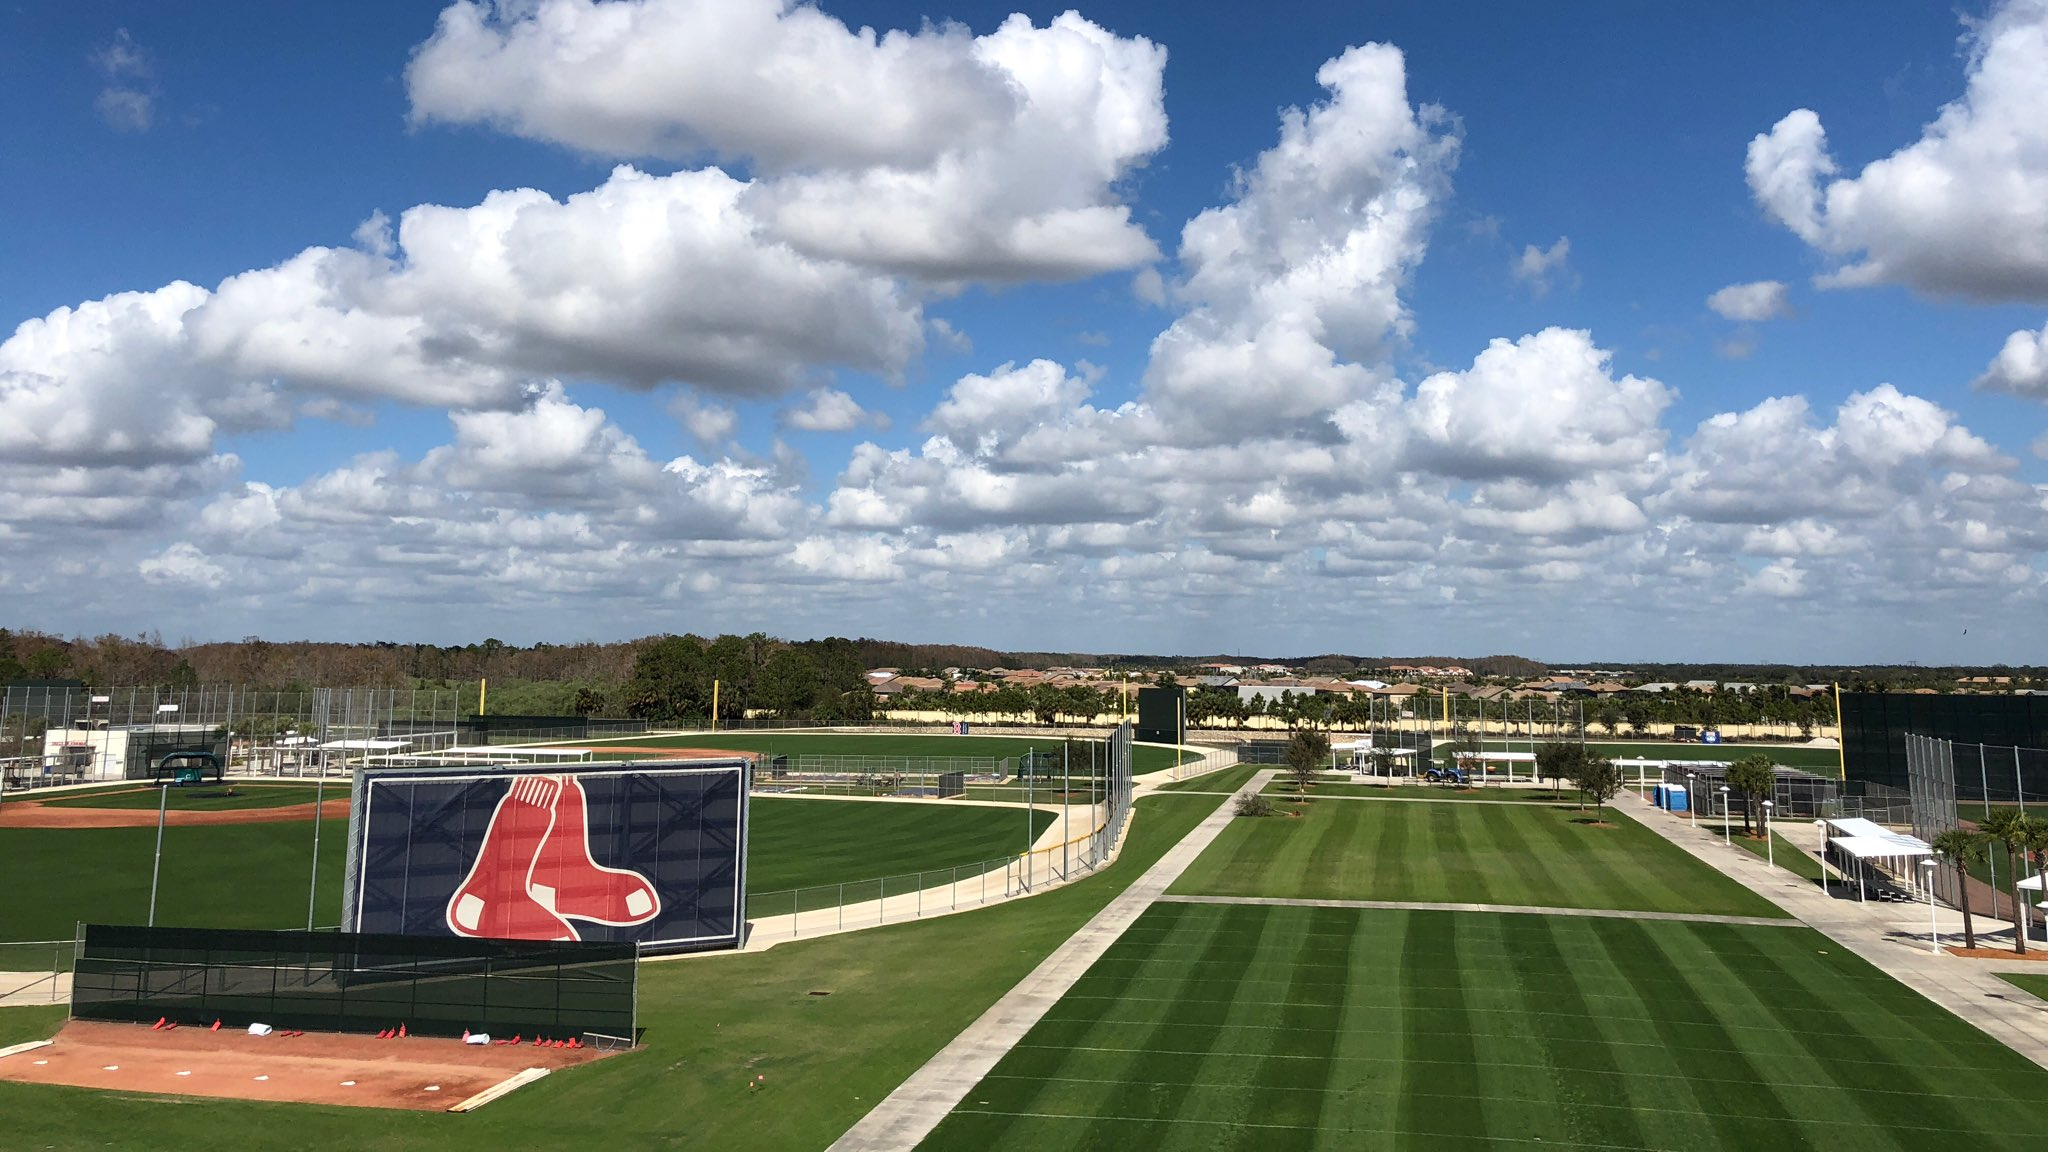 The calm before #SoxSpring... https://t.co/LvQdsOsseV